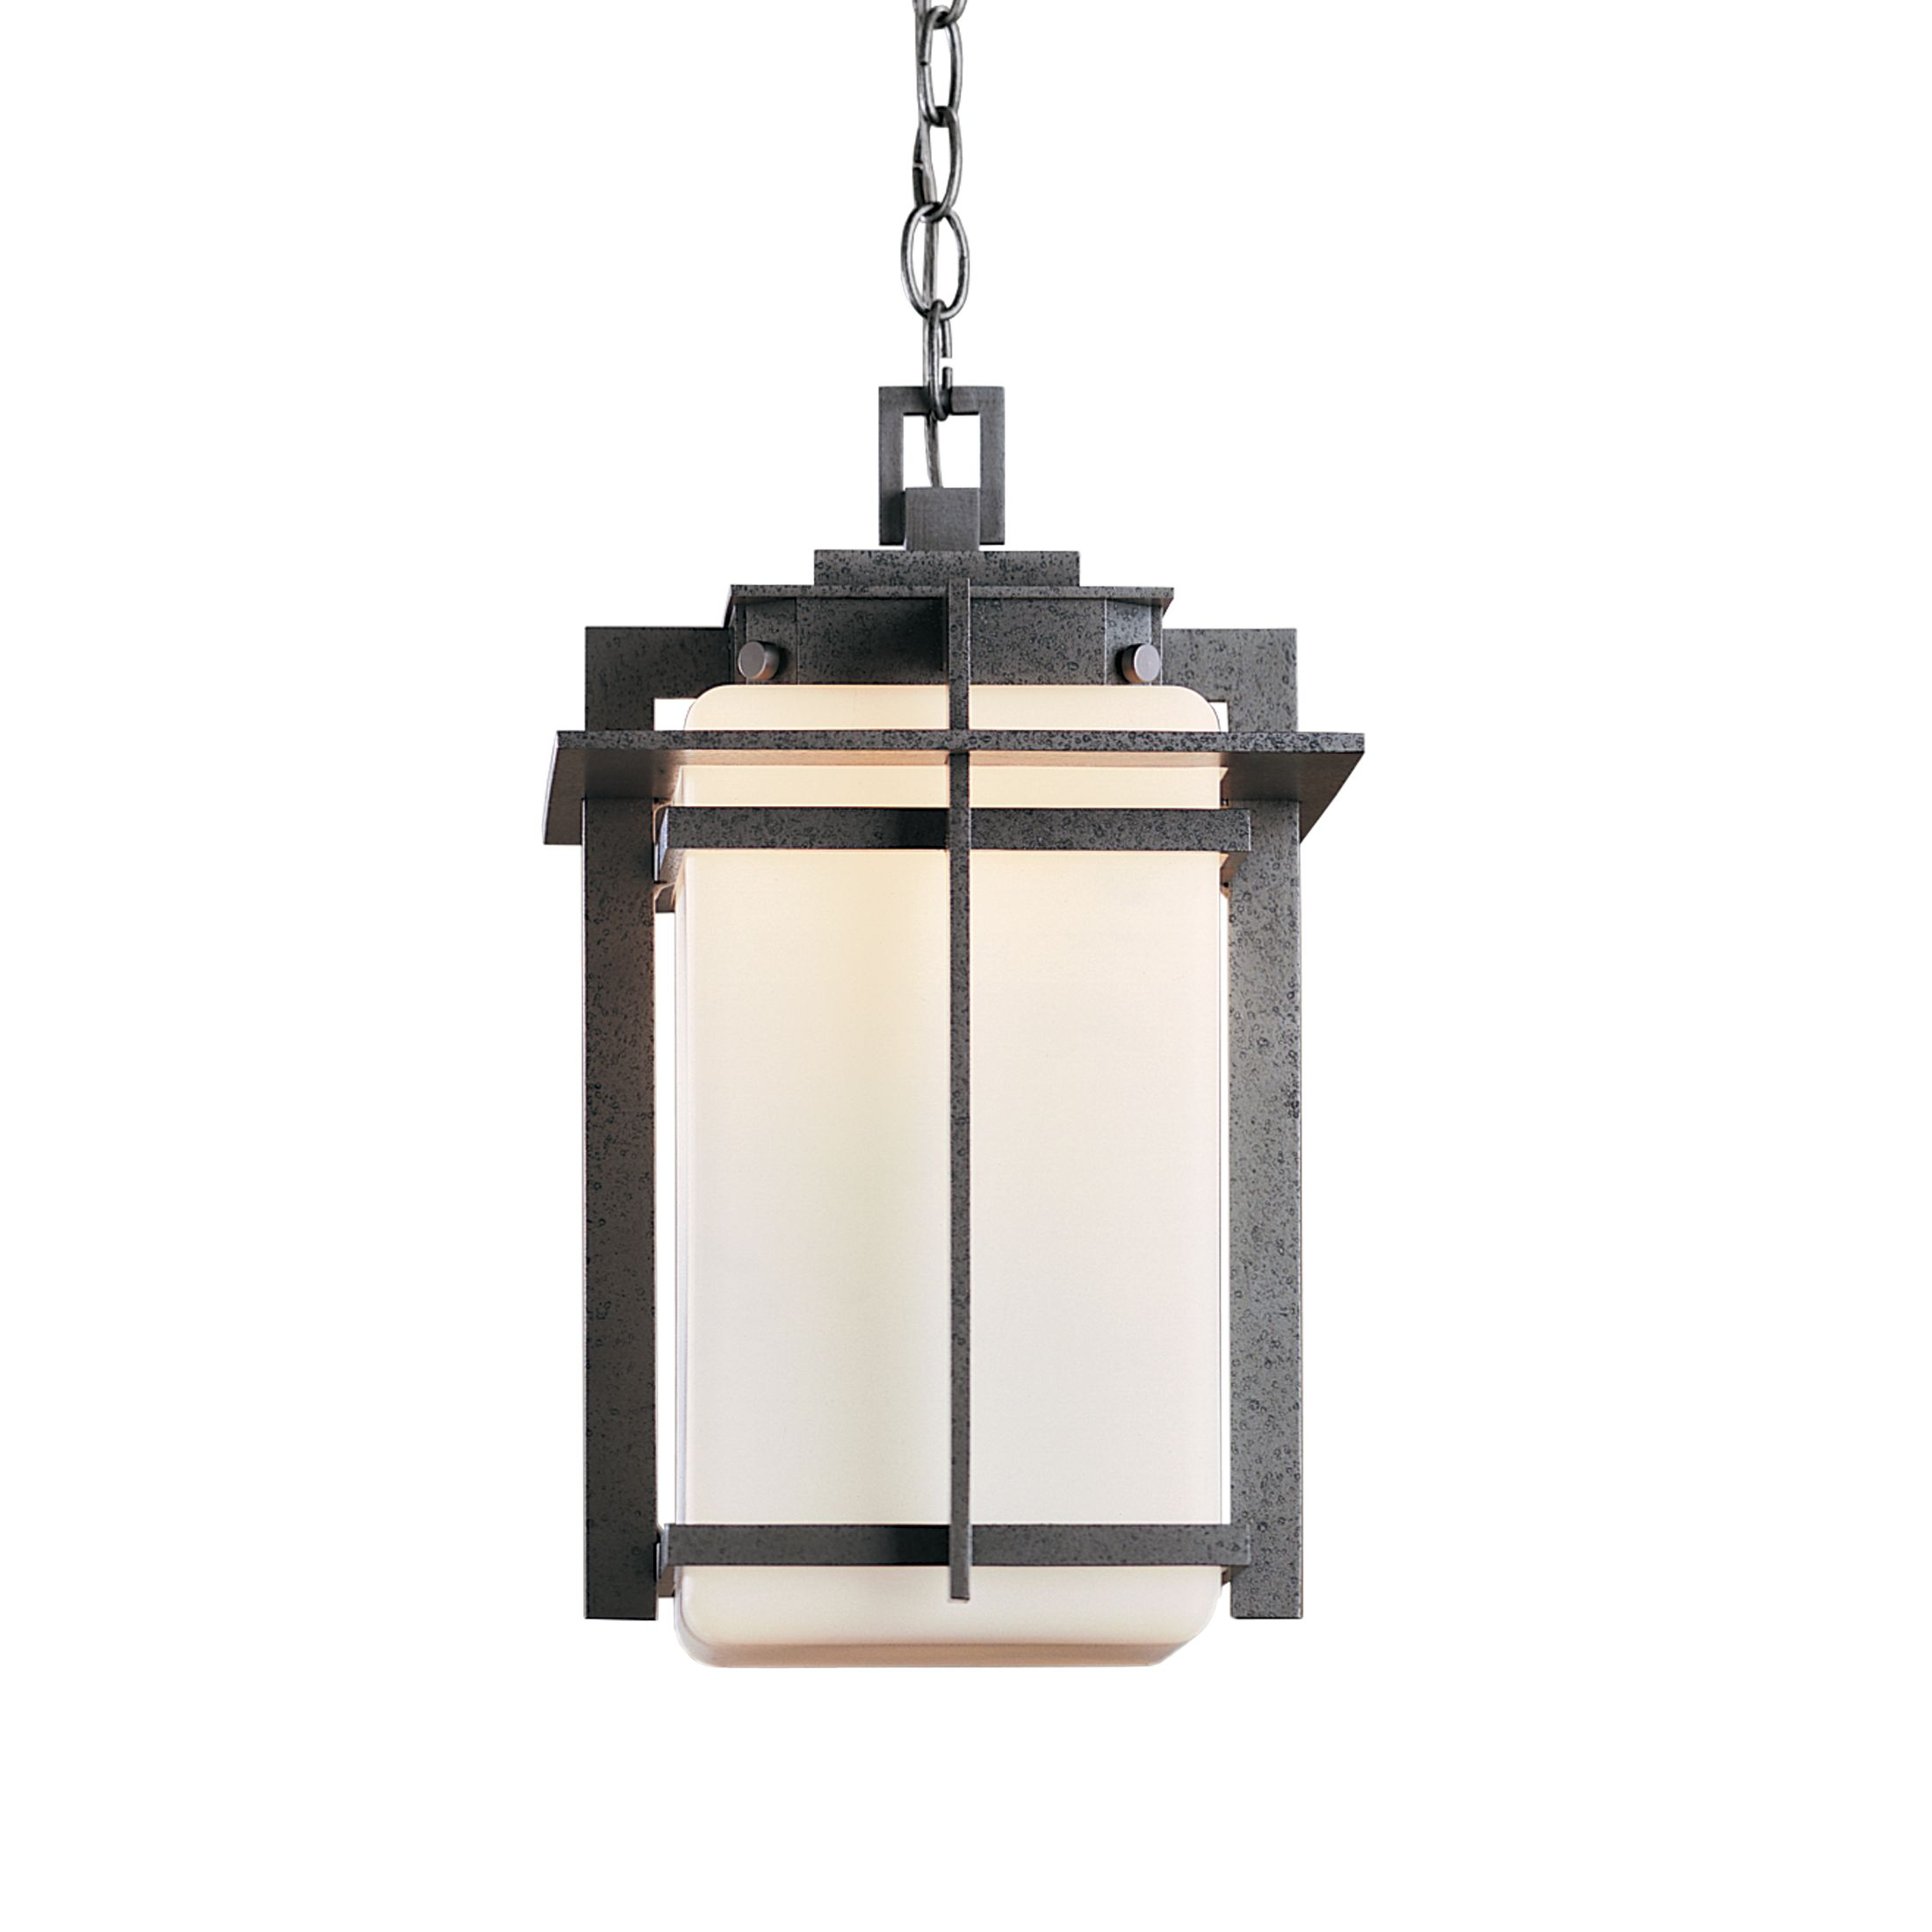 Hubbardton Forge Tourou: Banded Outdoor Post Light